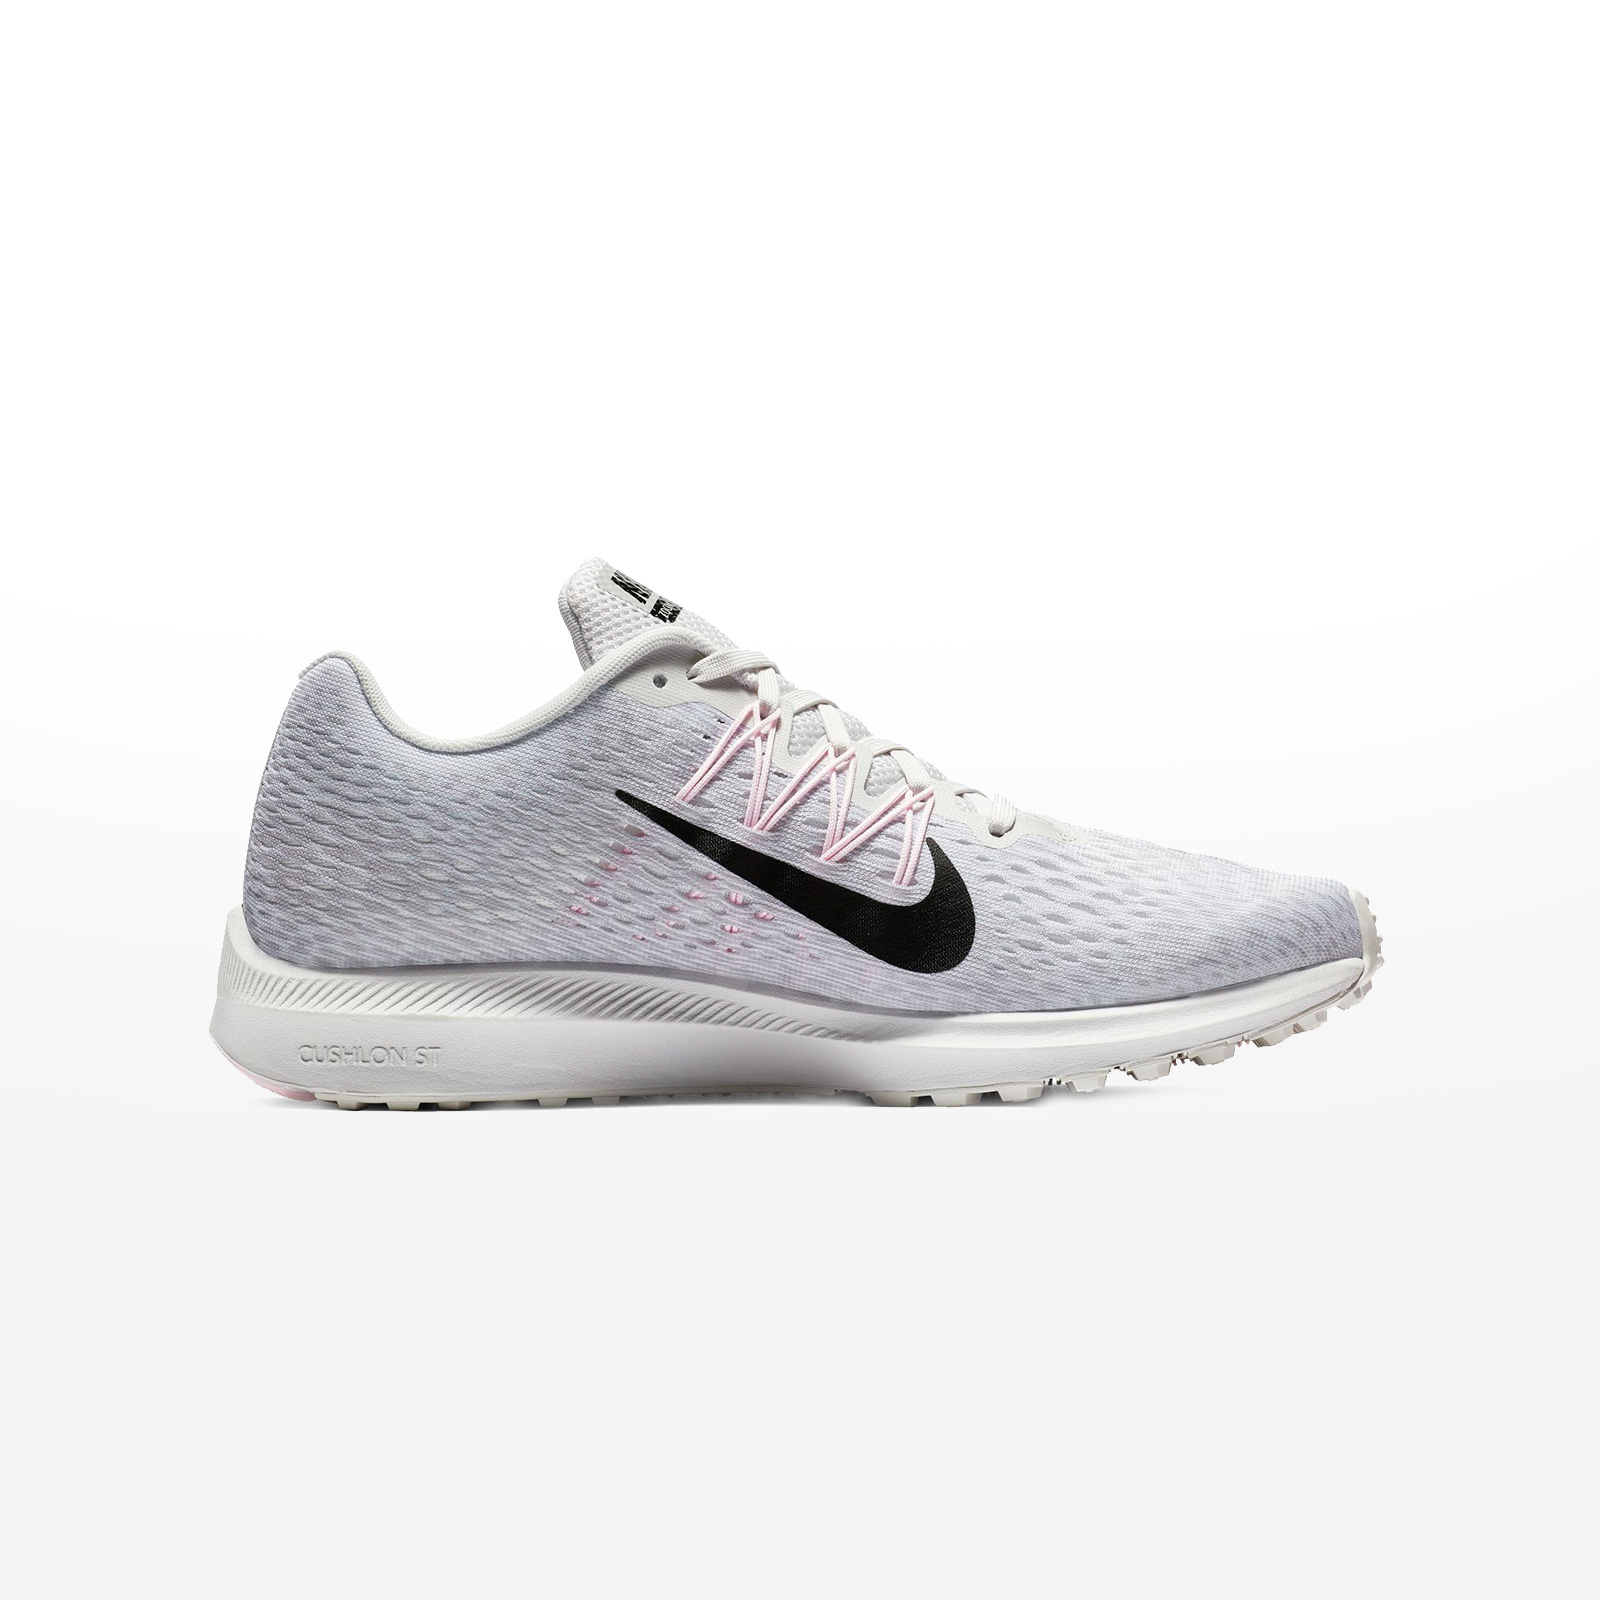 check out 7d216 7d9ba Sportcafe Nike – WMNS NIKE ZOOM WINFLO 5 – VAST GREY BLACK-ATMOSPHERE GREY